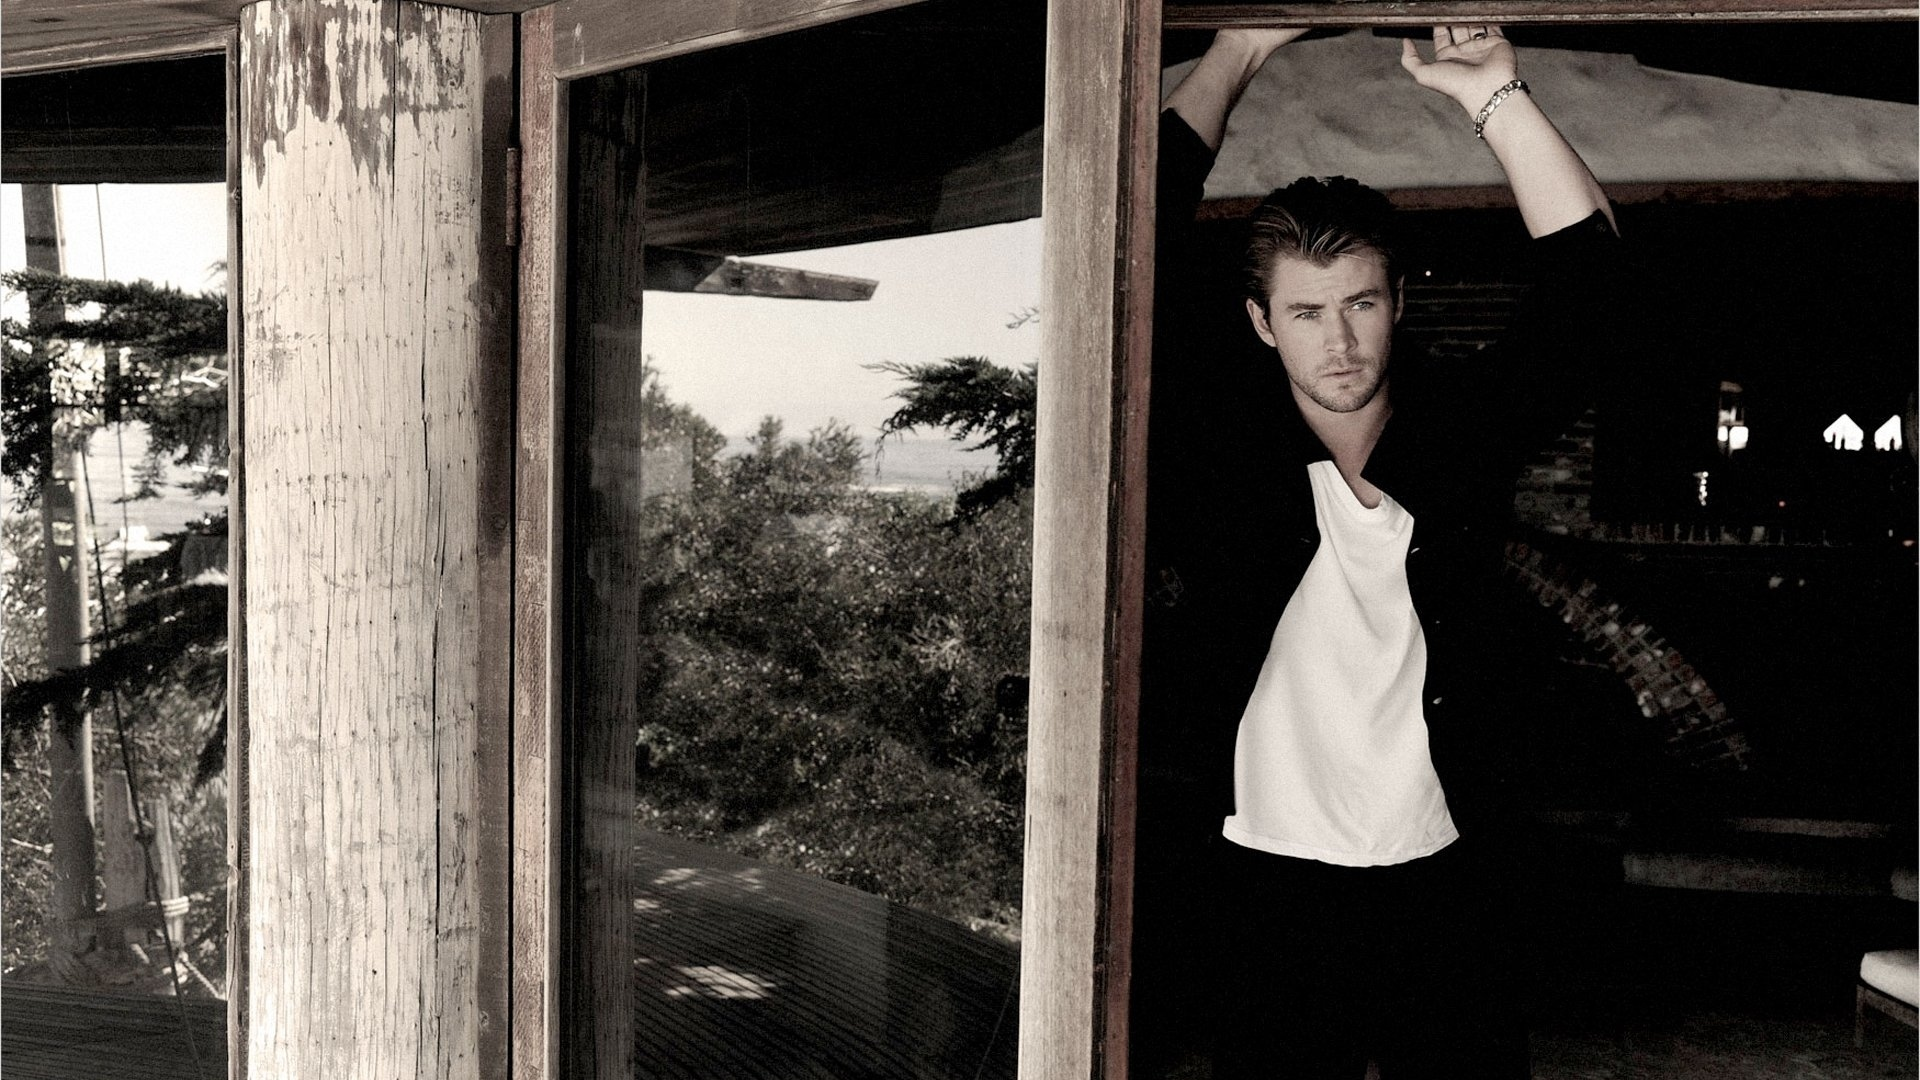 chris hemsworth,celebrity,famous person,celebrities,renown,chris,hemsworth,photoshoot,fame